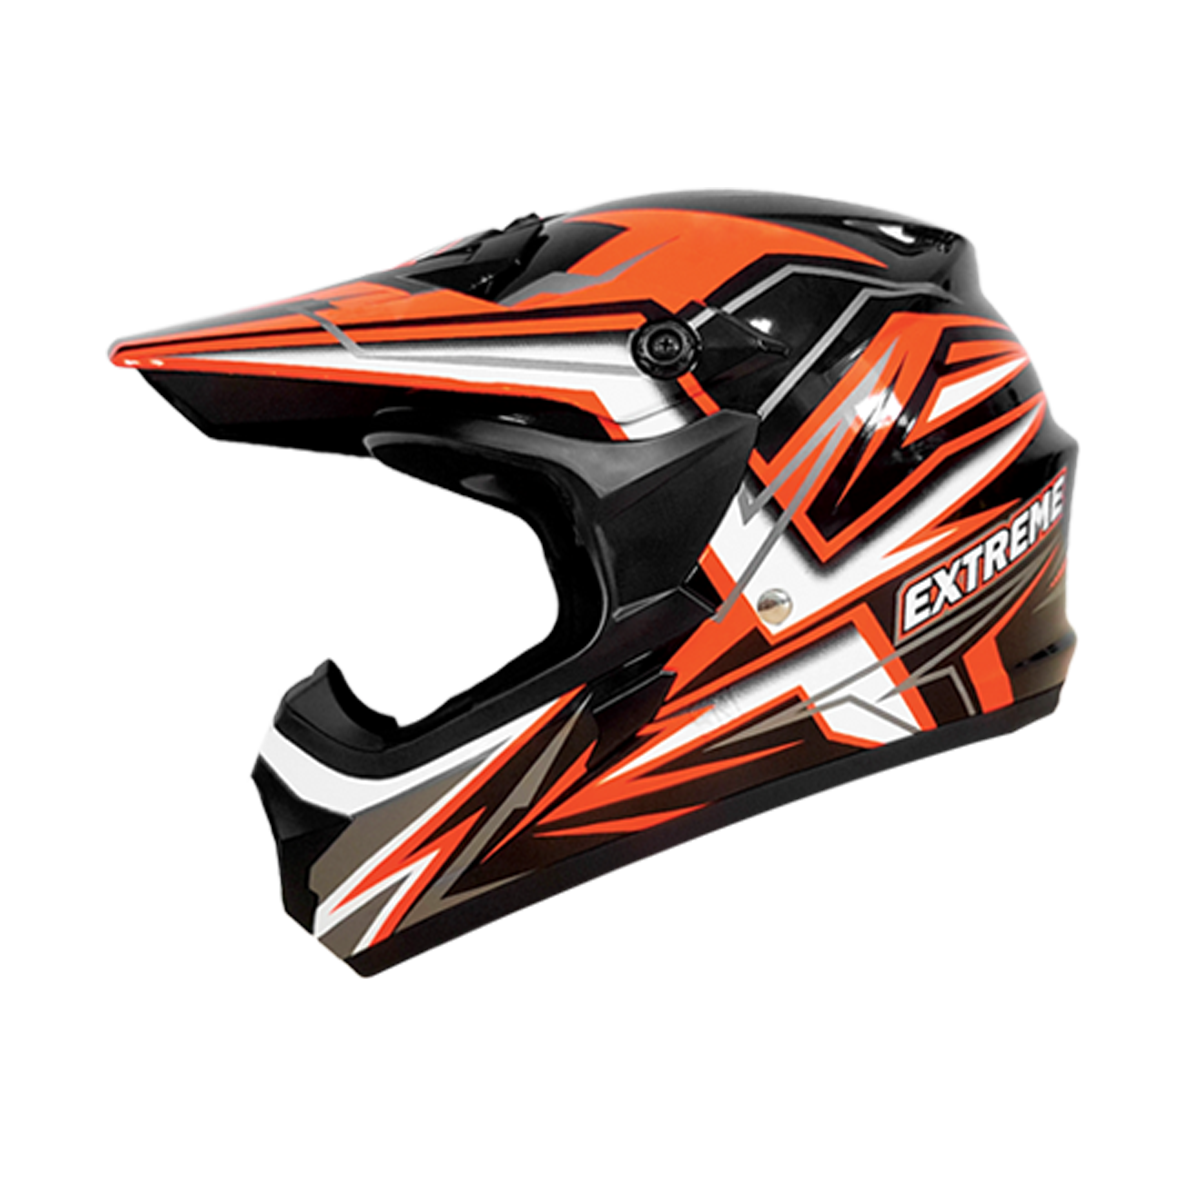 YF-N3 Extreme Black Orange